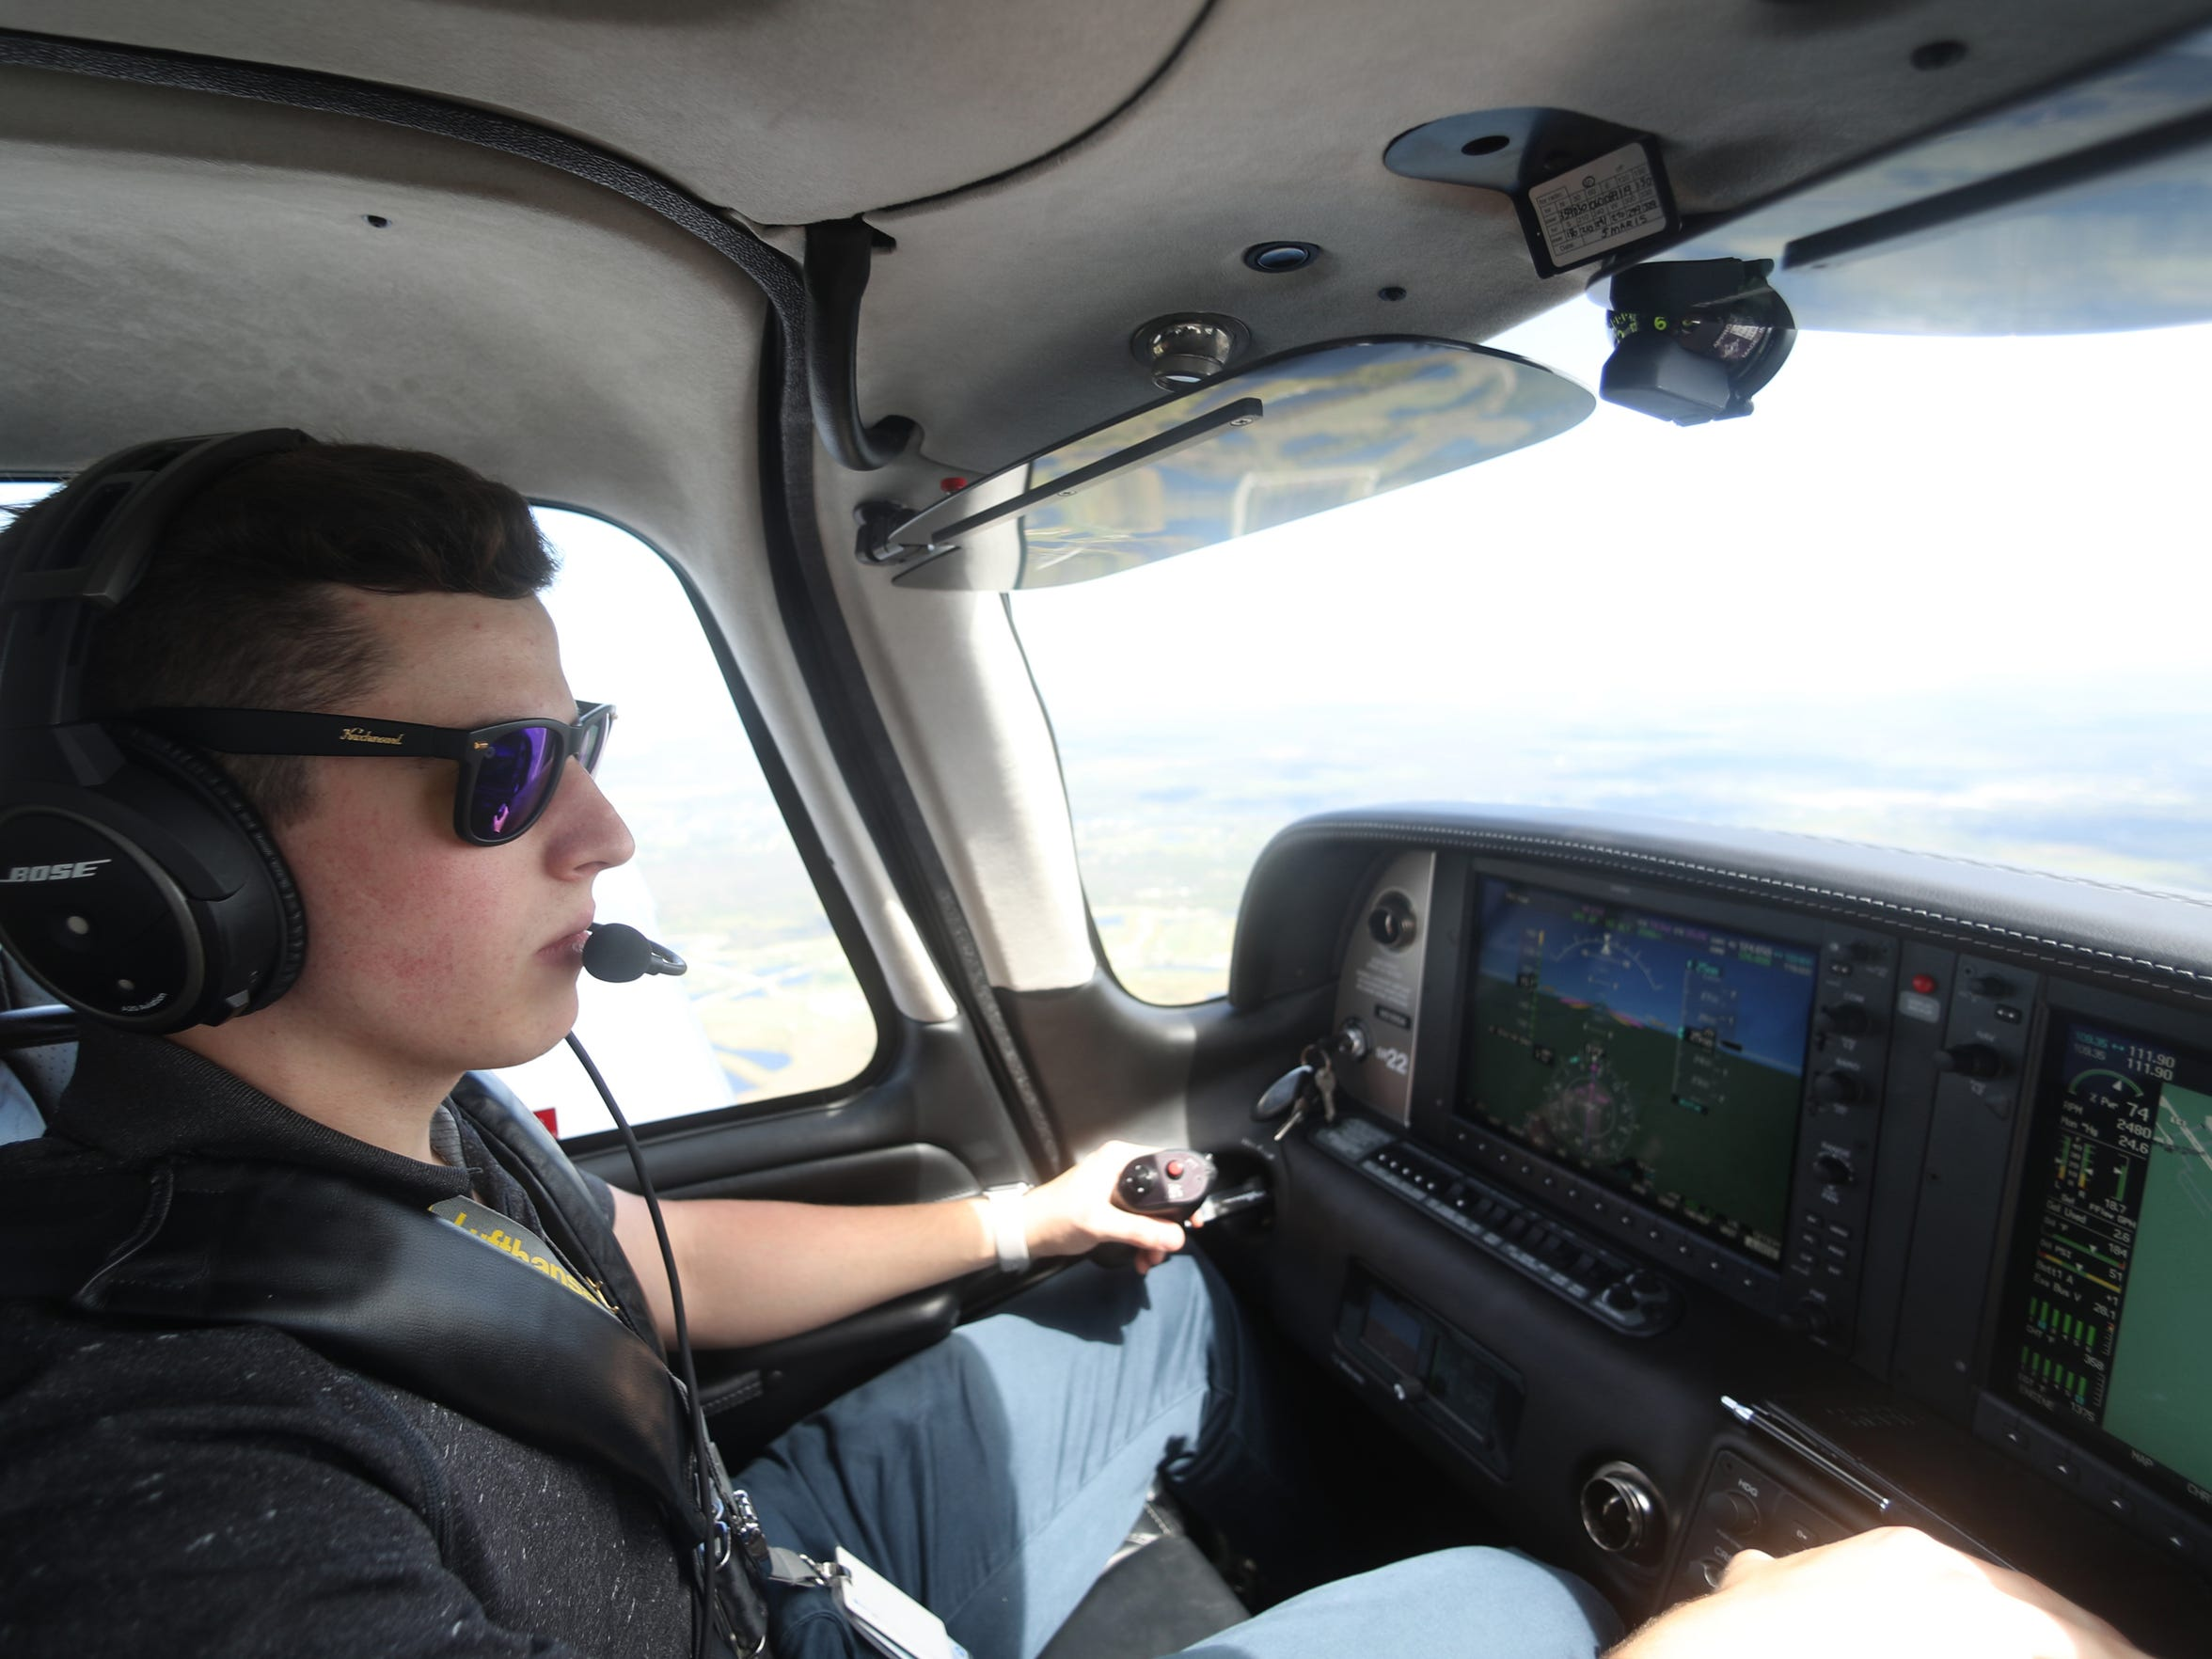 Pilot Dylan Leoni, a sophomore pre-med student at Florida State University, flies his family's Cirrus SR-22 down from Tallahassee to LaBelle, Fla., to deliver donated supplies to the rural city that is still reeling from the devastation of Hurricane Irma.